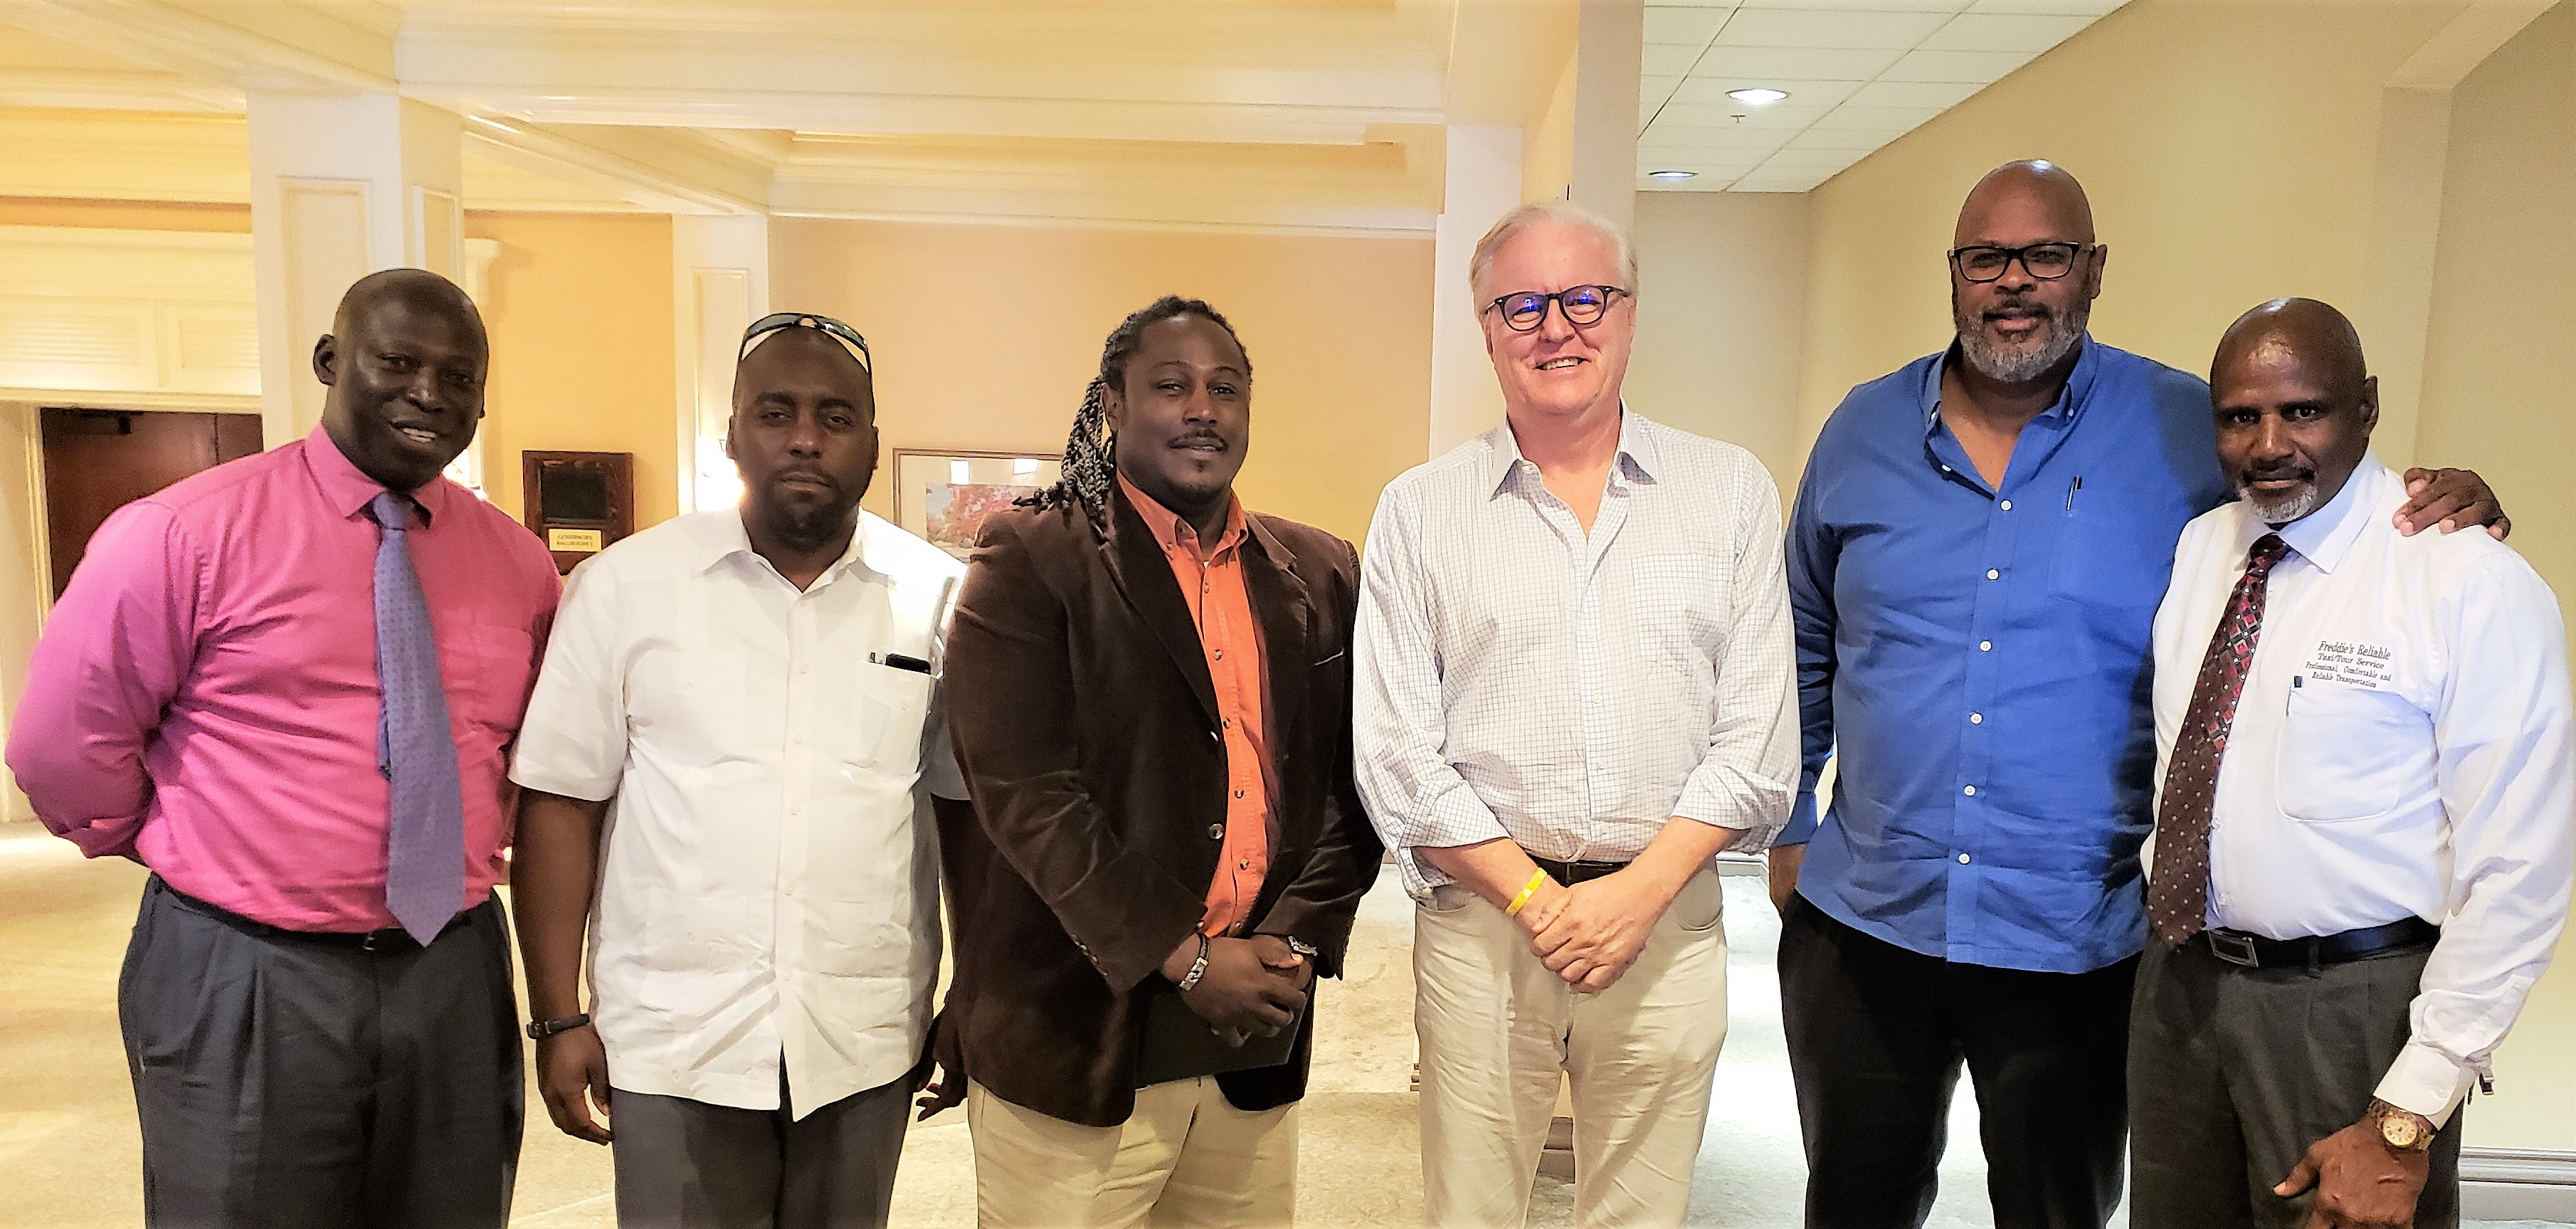 Bahamas Taxicab Union launches partnership with Global Ports Holding